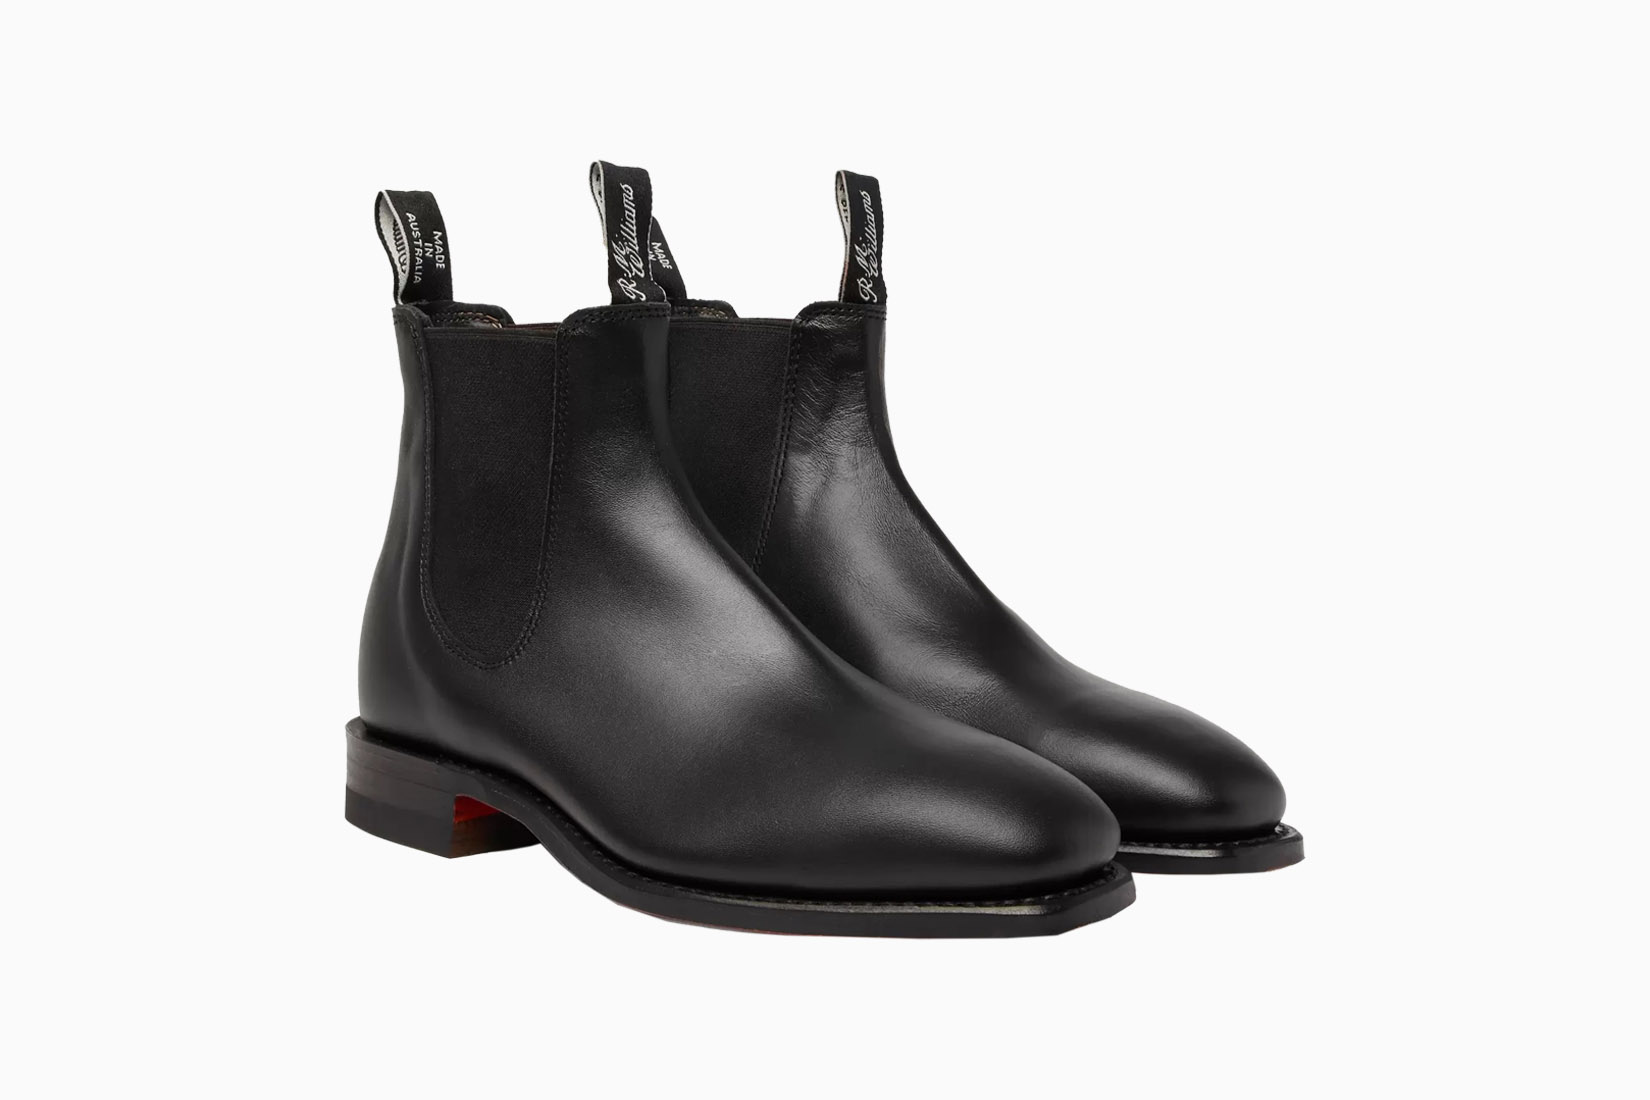 best chelsea boots r m williams review luxe